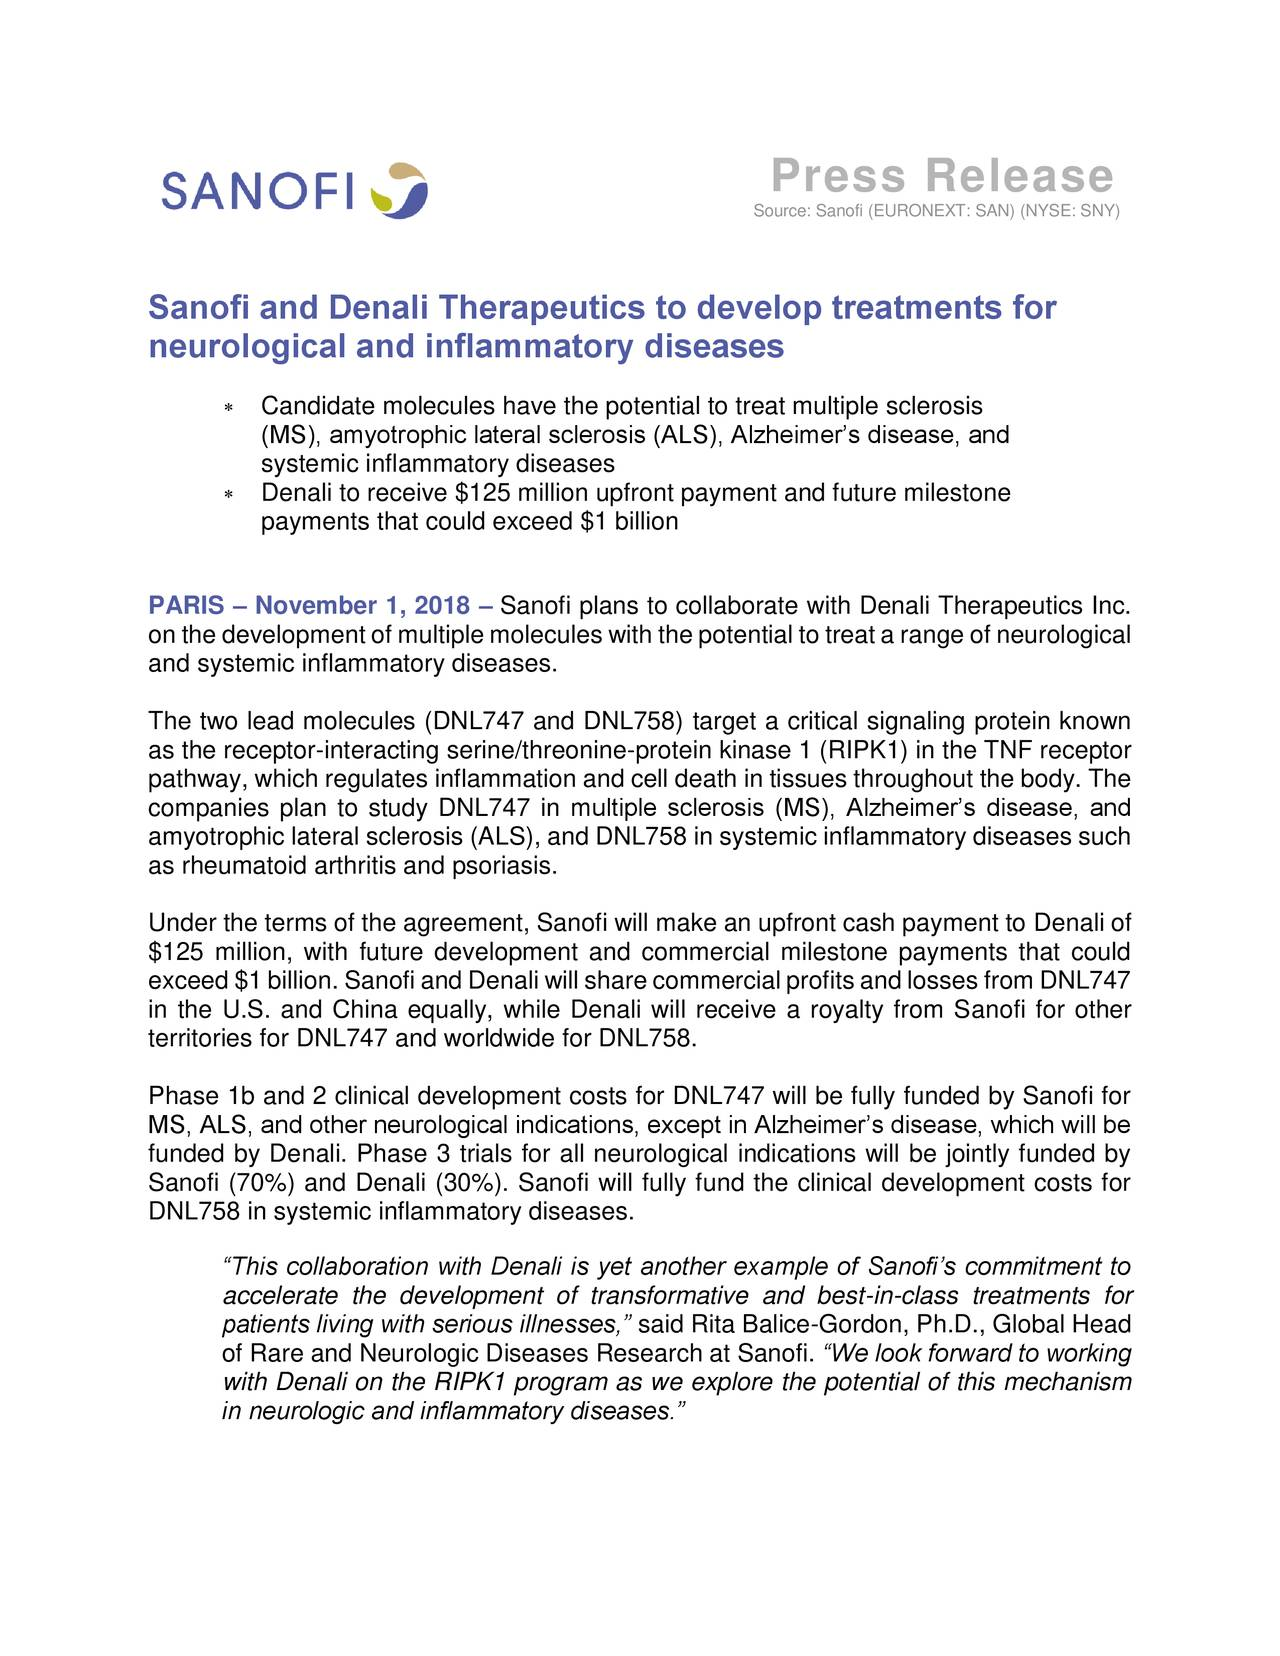 "Source: Sanofi (EURONEXT: SAN) (NYSE: SNY) Sanofi and Denali Therapeutics to develop treatments for neurological and inflammatory diseases  Candidate molecules have the potential to treat multiple sclerosis (MS), amyotrophic lateral sclerosis (ALS), Alzheimer's disease, and systemic inflammatory diseases  Denali to receive $125 million upfront payment and future milestone payments that could exceed $1 billion PARIS – November 1, 2018 – Sanofi plans to collaborate with Denali Therapeutics Inc. on the development of multiple molecules with the potential to treat a range of neurological and systemic inflammatory diseases. The two lead molecules (DNL747 and DNL758) target a critical signaling protein known as the receptor-interacting serine/threonine-protein kinase 1 (RIPK1) in the TNF receptor pathway, which regulates inflammation and cell death in tissues throughout the body. The companies plan to study DNL747 in multiple sclerosis (MS), Alzheimer's disease, and amyotrophic lateral sclerosis (ALS), and DNL758 in systemic inflammatory diseases such as rheumatoid arthritis and psoriasis. Under the terms of the agreement, Sanofi will make an upfront cash payment to Denali of $125 million, with future development and commercial milestone payments that could exceed $1 billion. Sanofi and Denali will share commercial profits and losses from DNL747 in the U.S. and China equally, while Denali will receive a royalty from Sanofi for other territories for DNL747 and worldwide for DNL758. Phase 1b and 2 clinical development costs for DNL747 will be fully funded by Sanofi for MS, ALS, and other neurological indications, except in Alzheimer's disease, which will be funded by Denali. Phase 3 trials for all neurological indications will be jointly funded by Sanofi (70%) and Denali (30%). Sanofi will fully fund the clinical development costs for DNL758 in systemic inflammatory diseases. ""This collaboration with Denali is yet another example of Sanofi's commitment to accelerate the development of transformative and best-in-class treatments for patients living with serious illnesses,"" said Rita Balice-Gordon, Ph.D., Global Head of Rare and Neurologic Diseases Research at Sanofi. ""We look forward to working with Denali on the RIPK1 program as we explore the potential of this mechanism in neurologic and inflammatory diseases."""